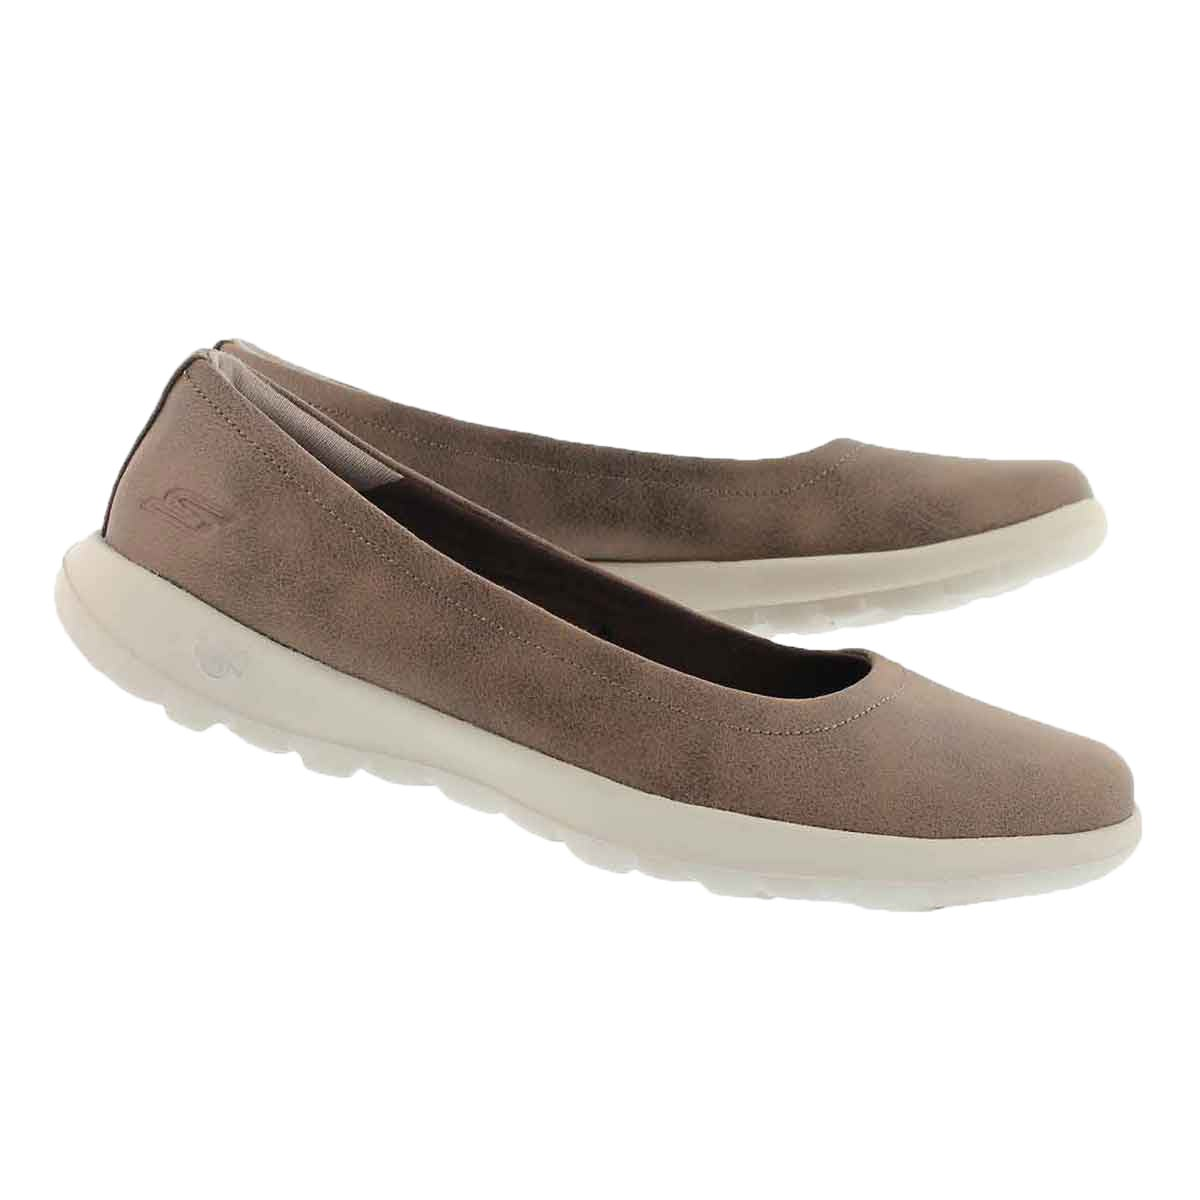 Lds GO Walk Lite Gem brown flat